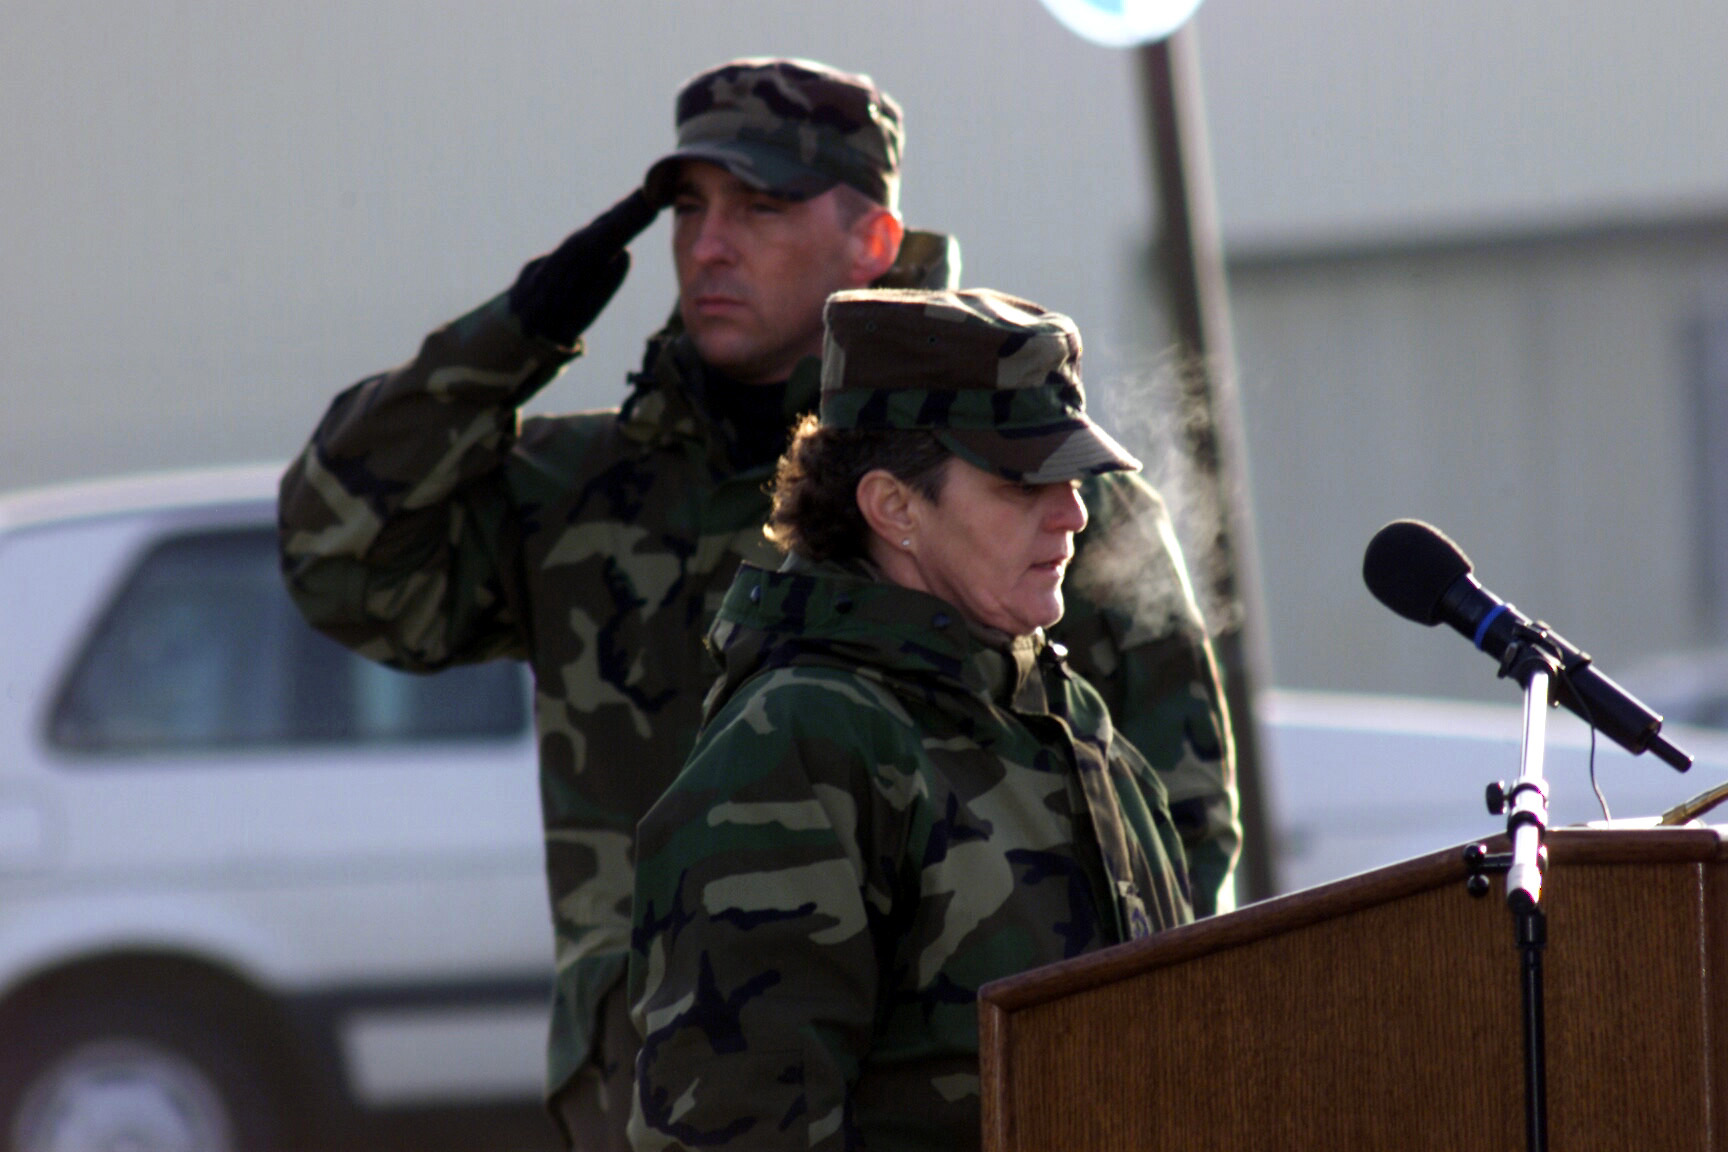 SENIOR MASTER Sergeant (SMSGT) Dolores Witt, 52nd Equipment Maintenance Squadron (EMS), sings the German and American National Anthems during the 52d Fighter Wing, Spangdahlem Air Base, Germany, Remembrance Ceremony